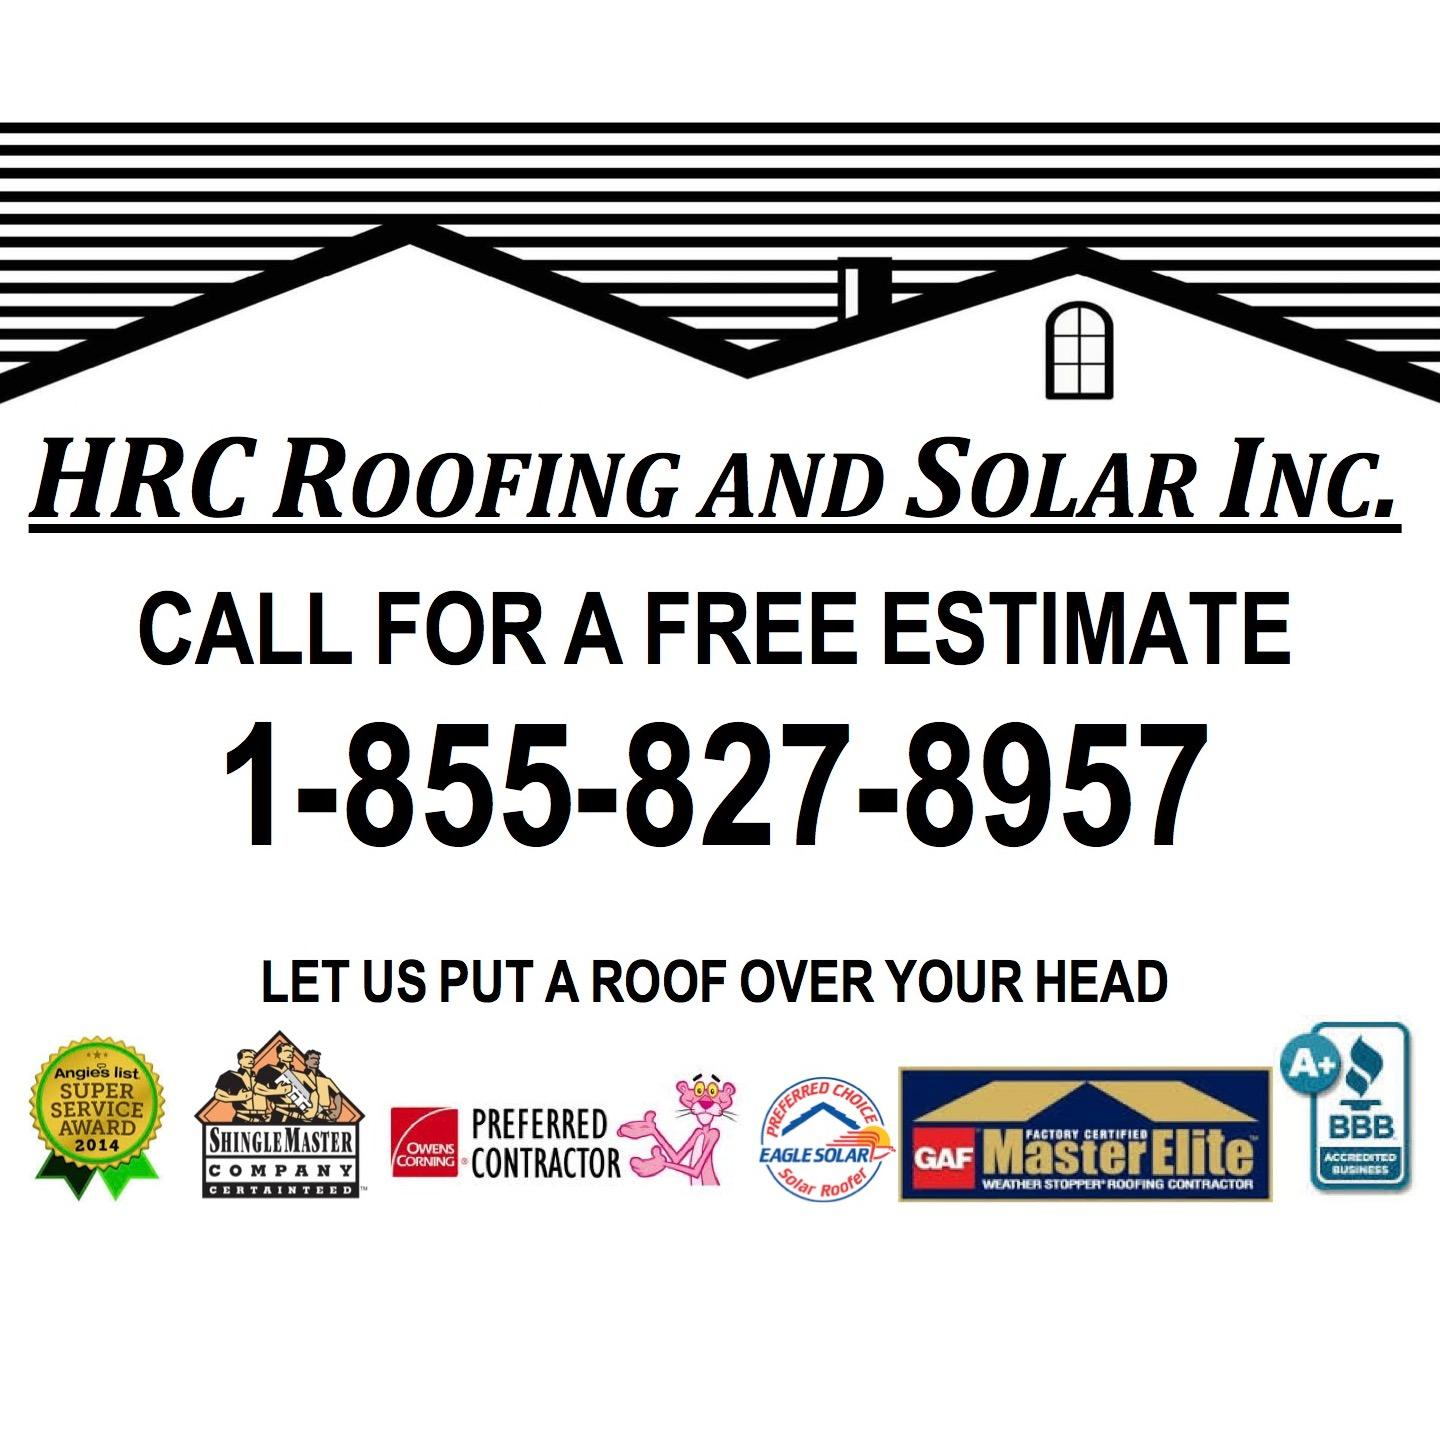 HRC Roofing and Solar Inc. image 4